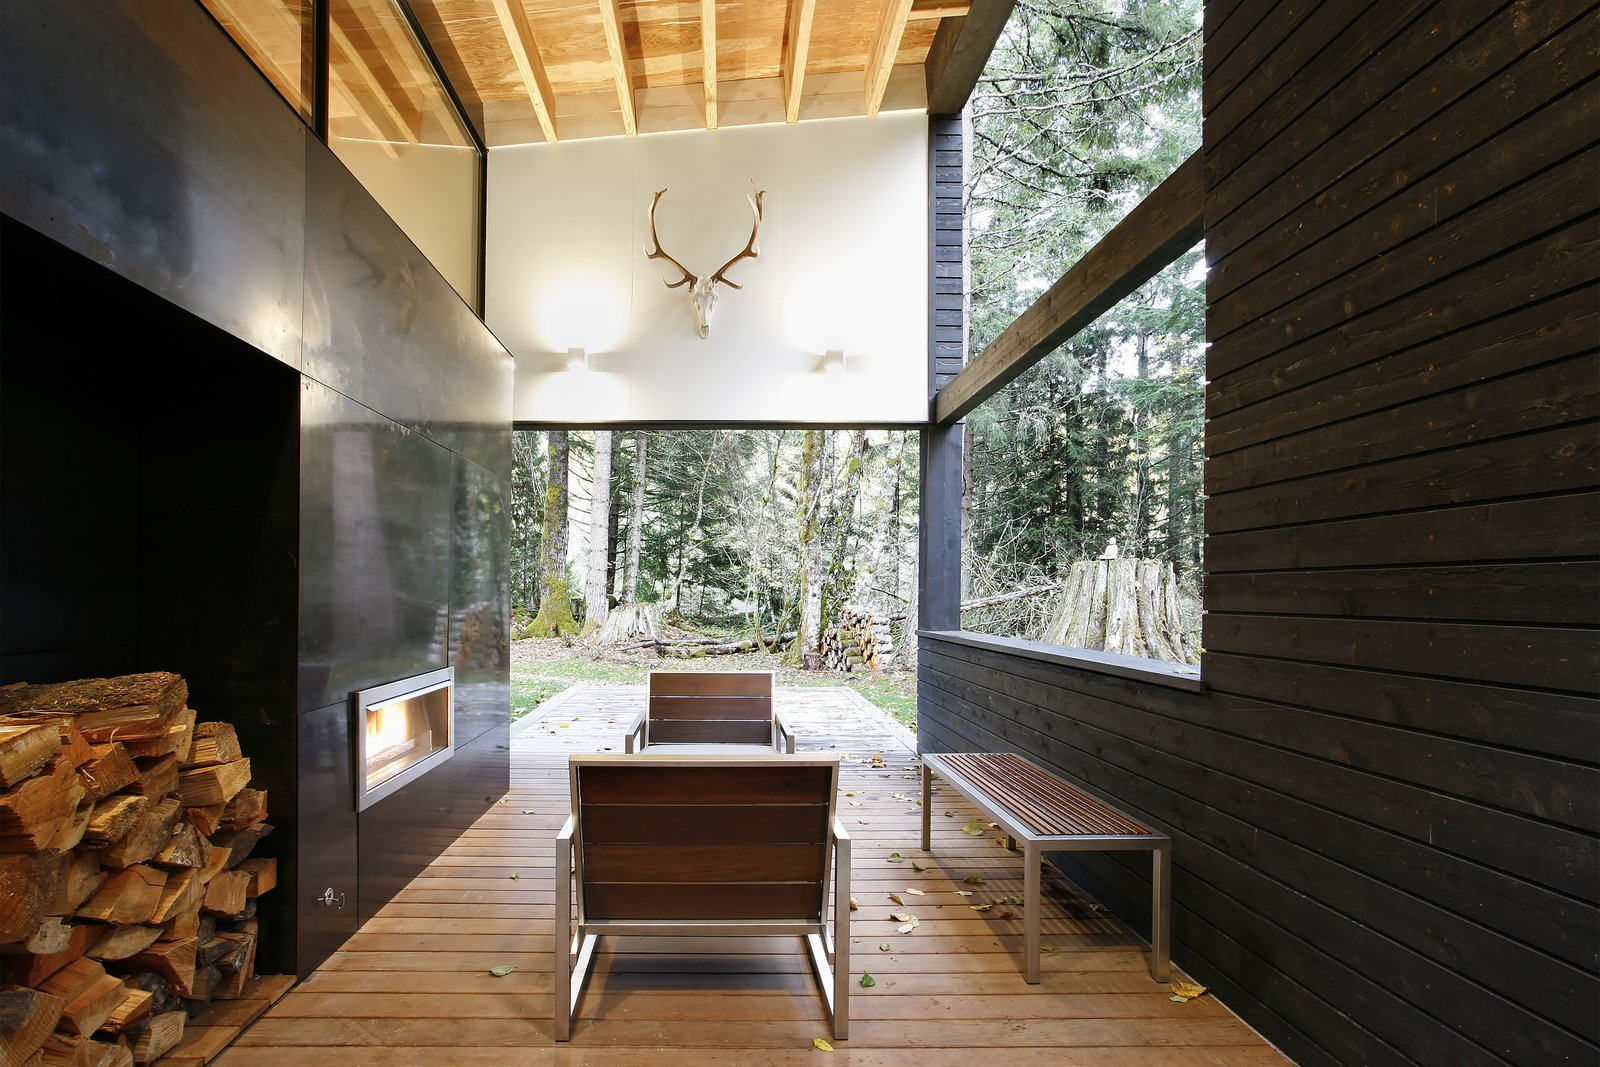 Tagged: Outdoor and Wood Patio, Porch, Deck.  Courtyard House on a River by Robert Hutchison Architecture